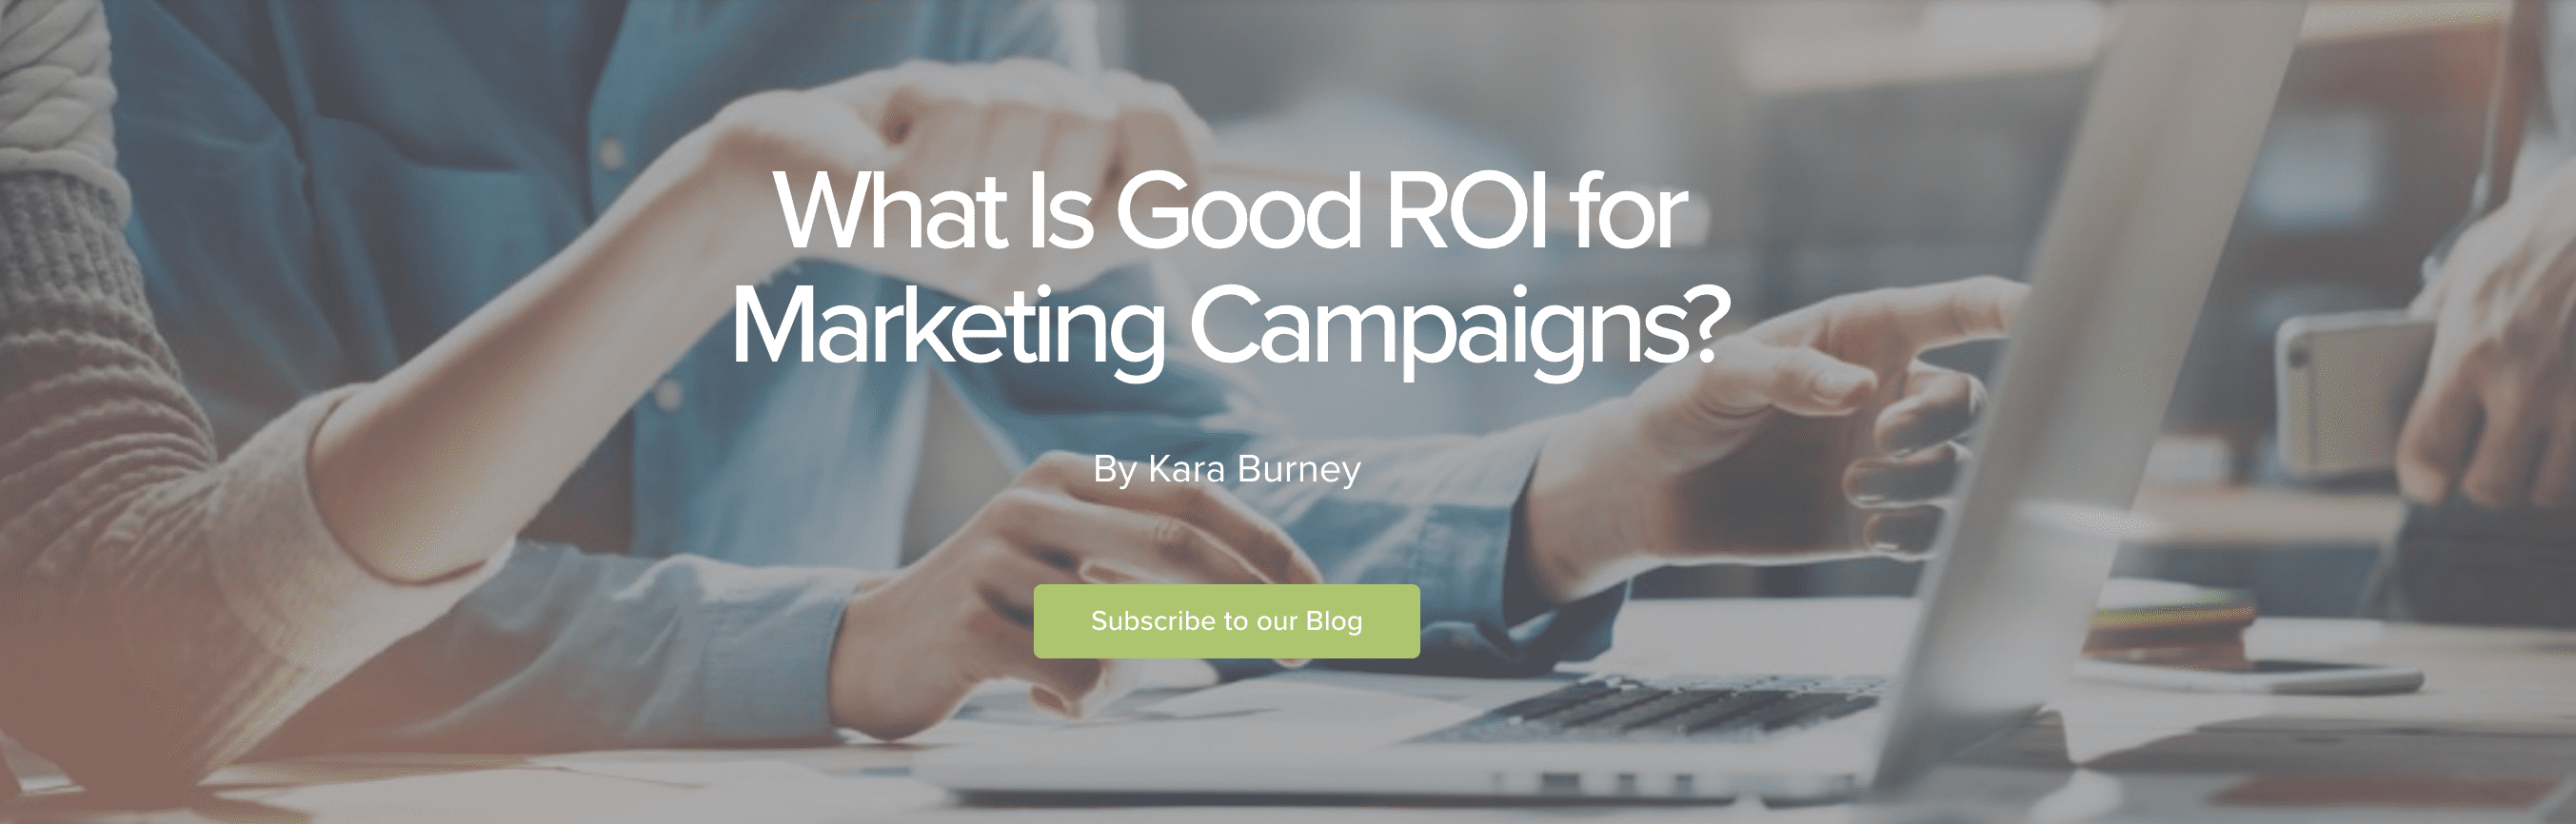 Track Maven Blog: What Is Good ROI for Marketing Campaigns? by Kara Burney